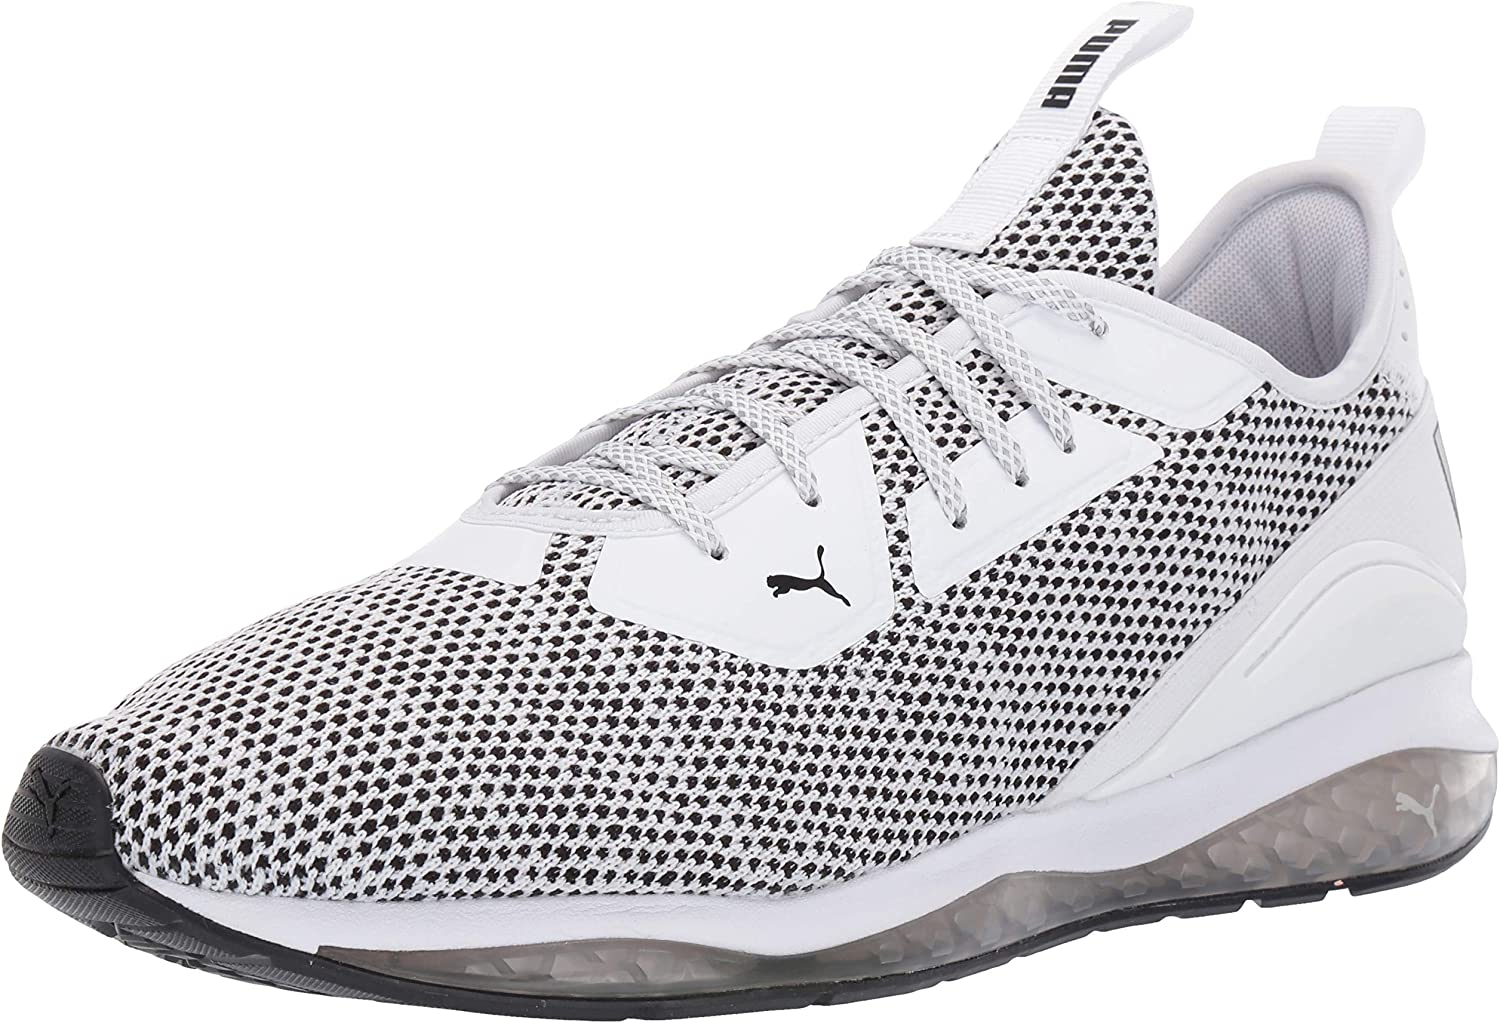 PUMA Men's Cell Ultimate Sneaker, White blac, 7 M US